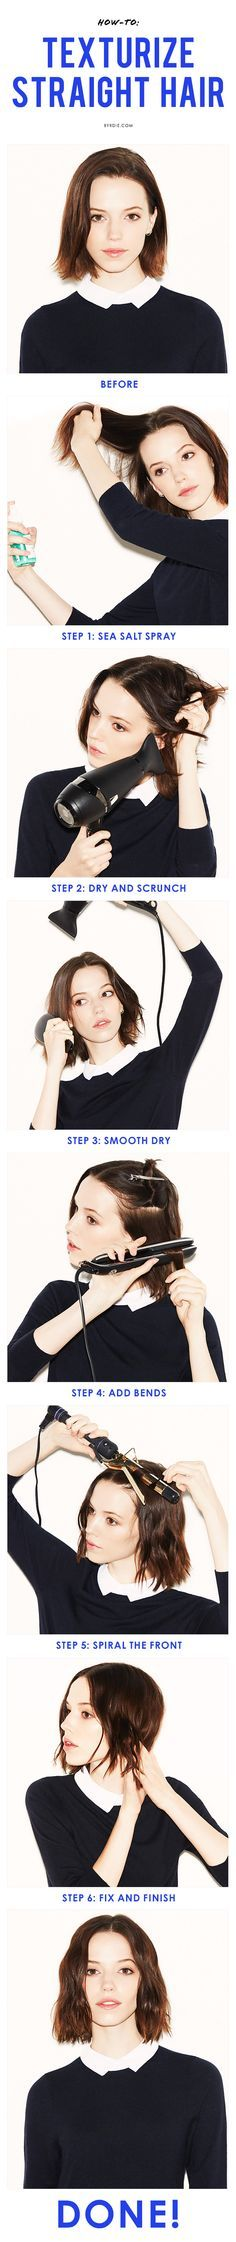 How to give stick-straight hair model-off-duty texture // #Hair #Tips